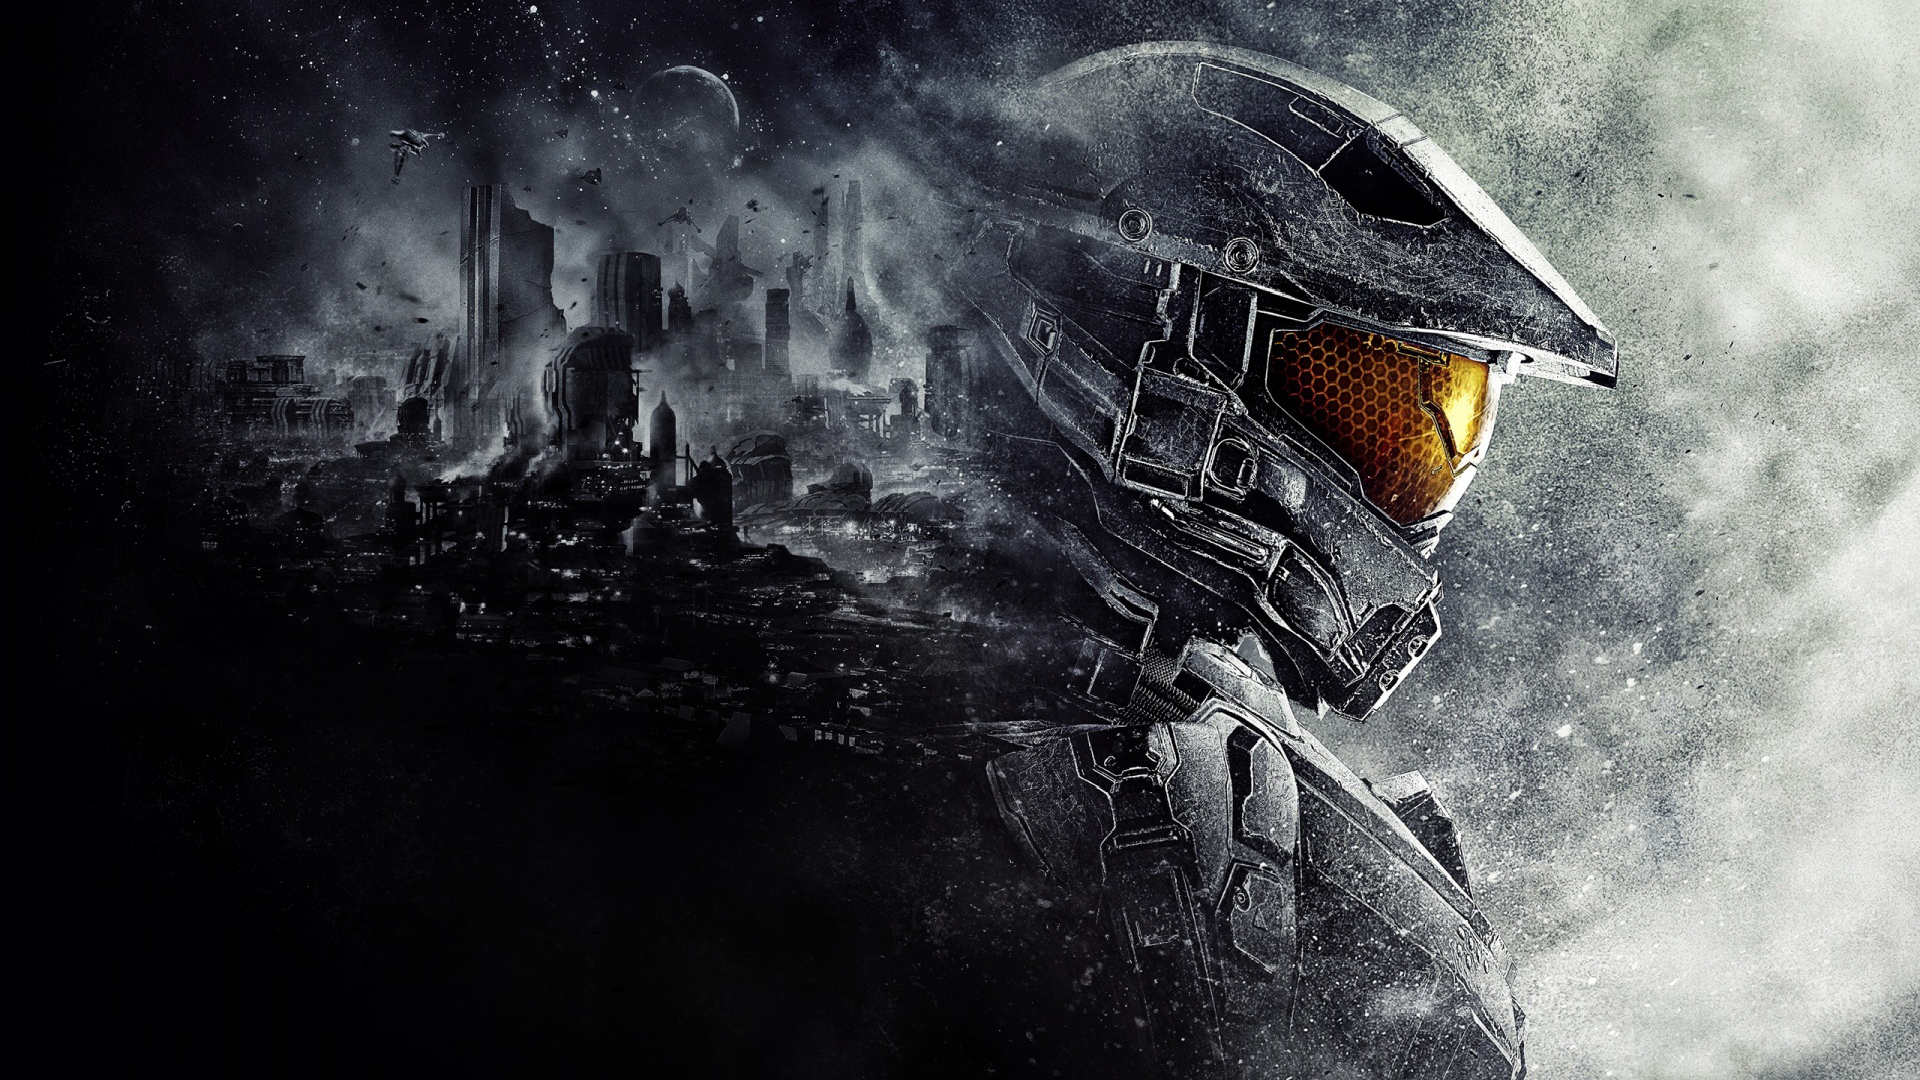 annulus,videogame,overlord,glory,fanart,masterchief,boss,gage,chief,gaffer,master,skipper,games,aura,victor,halo,principal